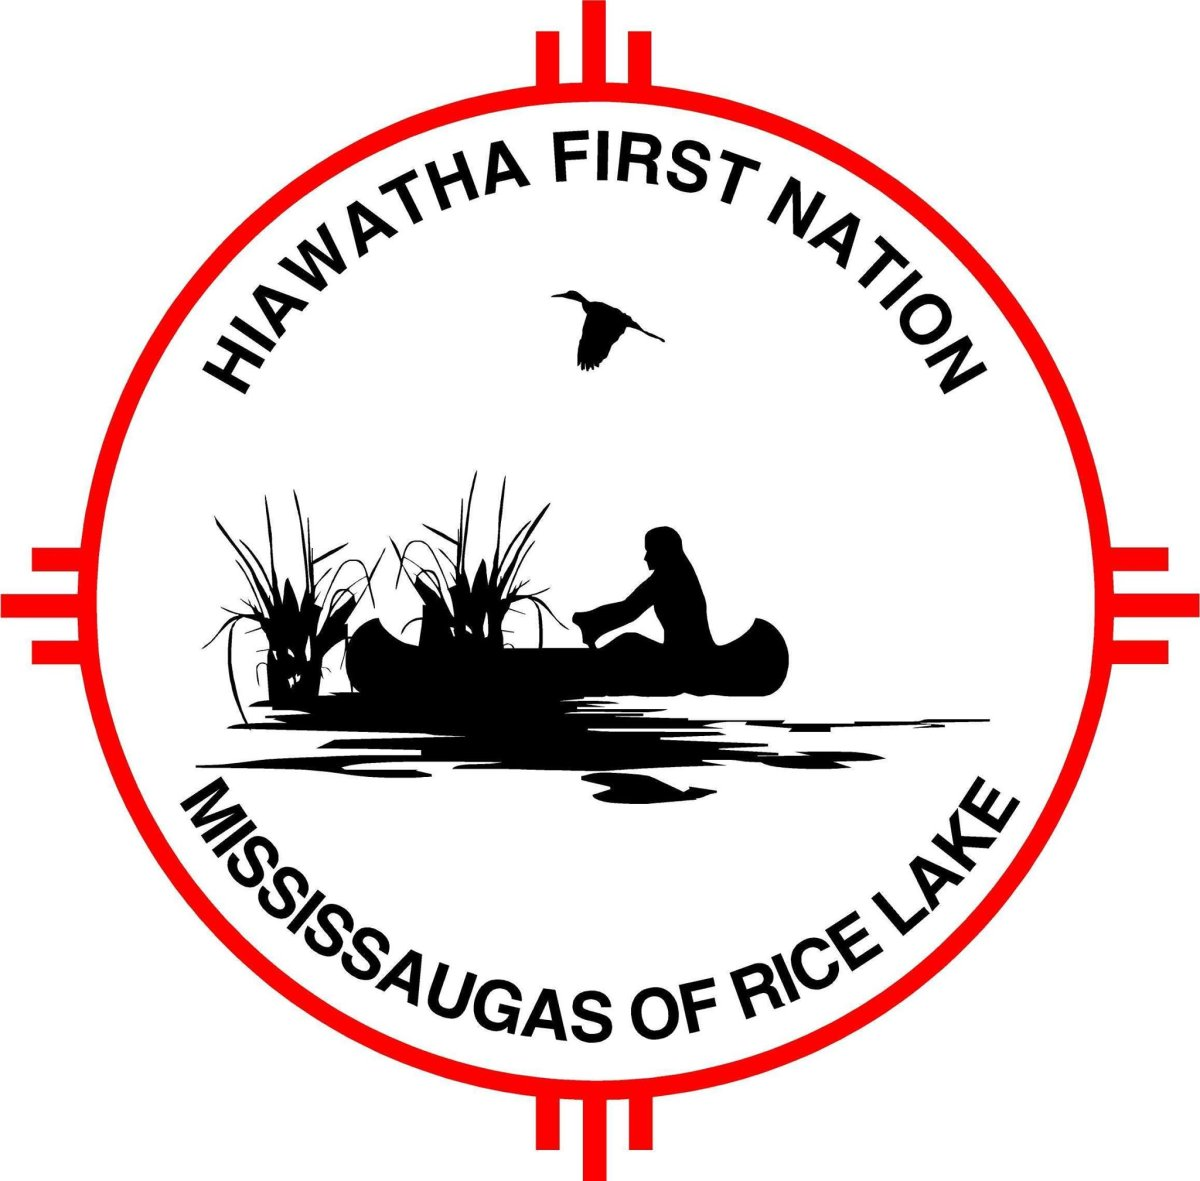 Hiawatha First Nation has a checkpoint entering the community during the coronavirus pandemic.